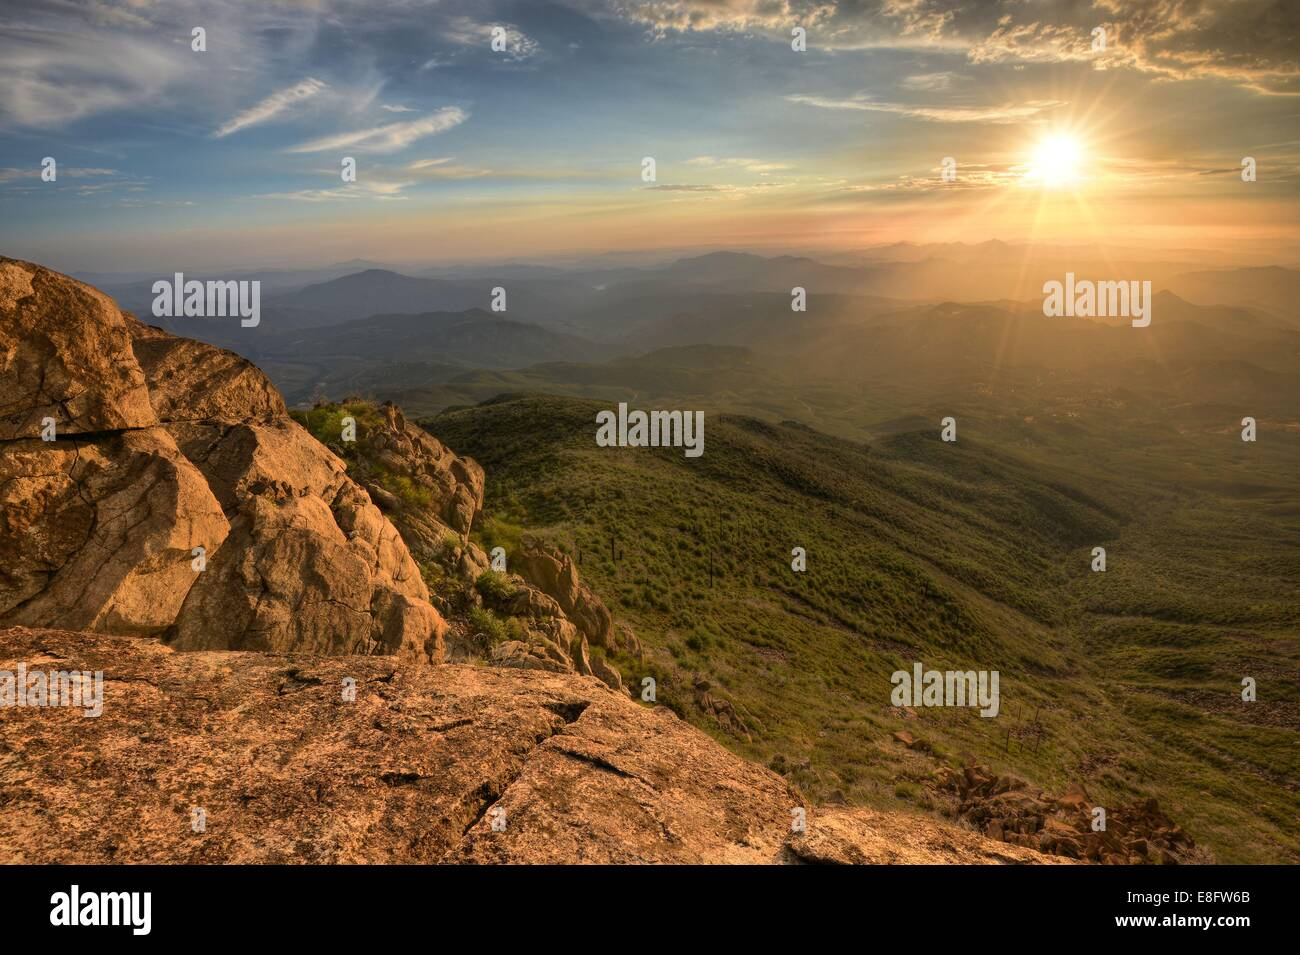 USA, California, Rancho Cuyamaca State Park, San Diego County, Sunset from Cuyamaca Mountain - Stock Image